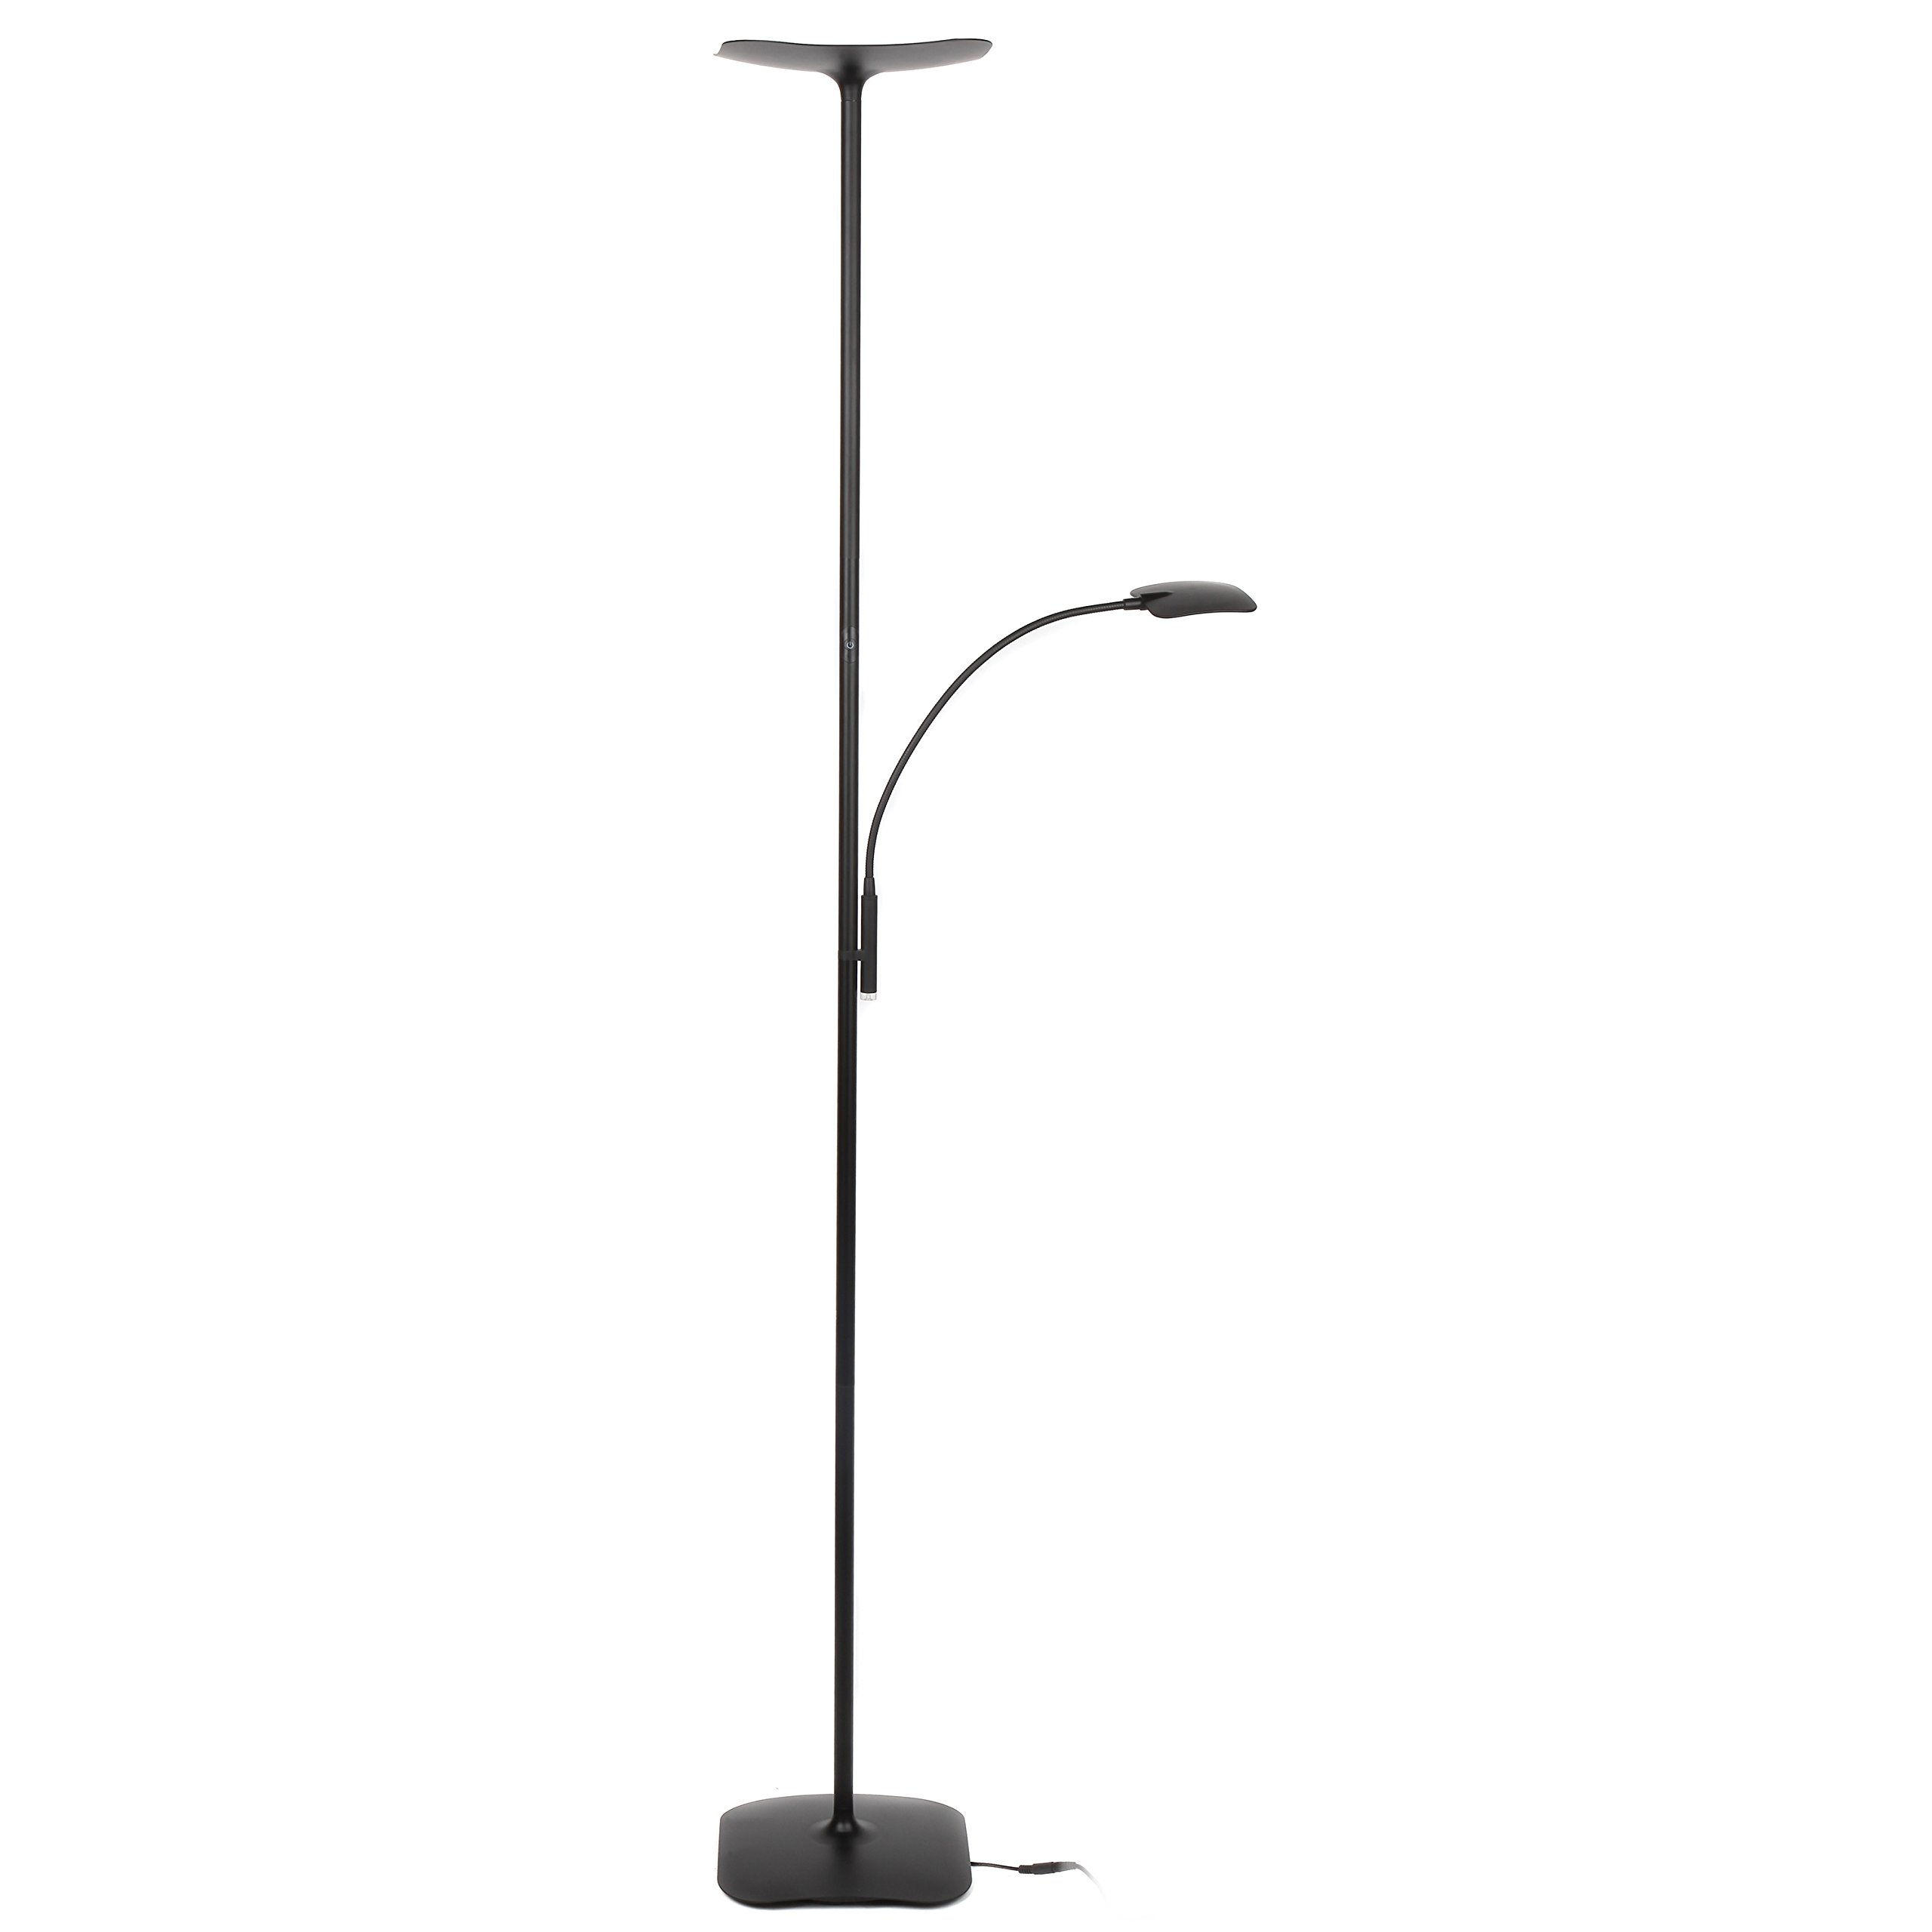 Brightech Sky Plus LED Torchiere Floor & Reading Lamp – Living Room Standing Reading Dimmable Adjustable Light – for Dorm, Bedroom or Office – Jet Black